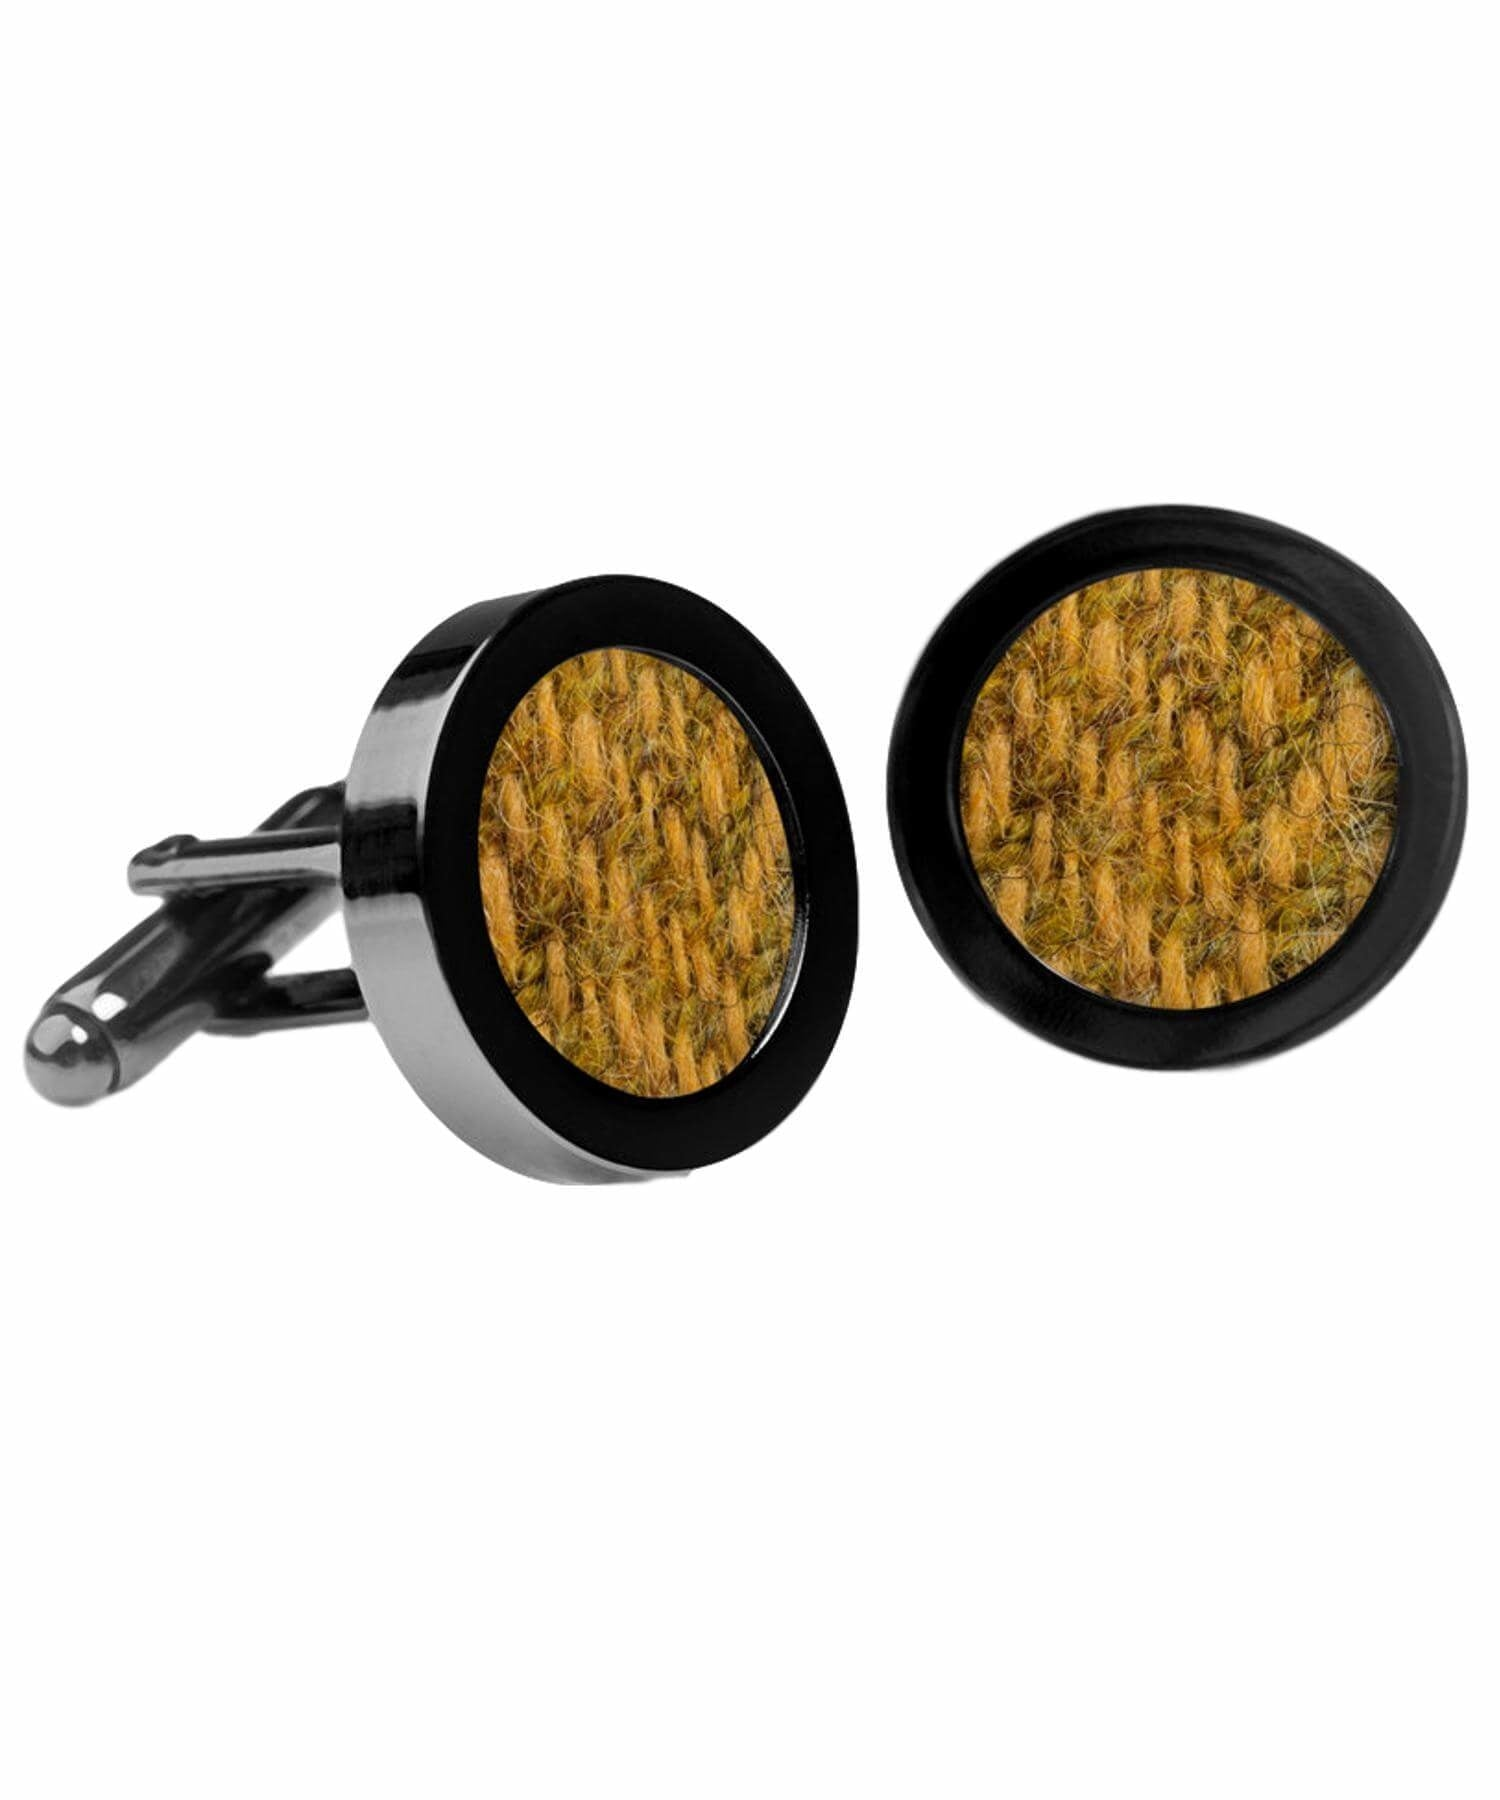 Donegal Tweed Cufflinks - Amber - [Orwell & Browne] - Jewellery - Irish Gifts